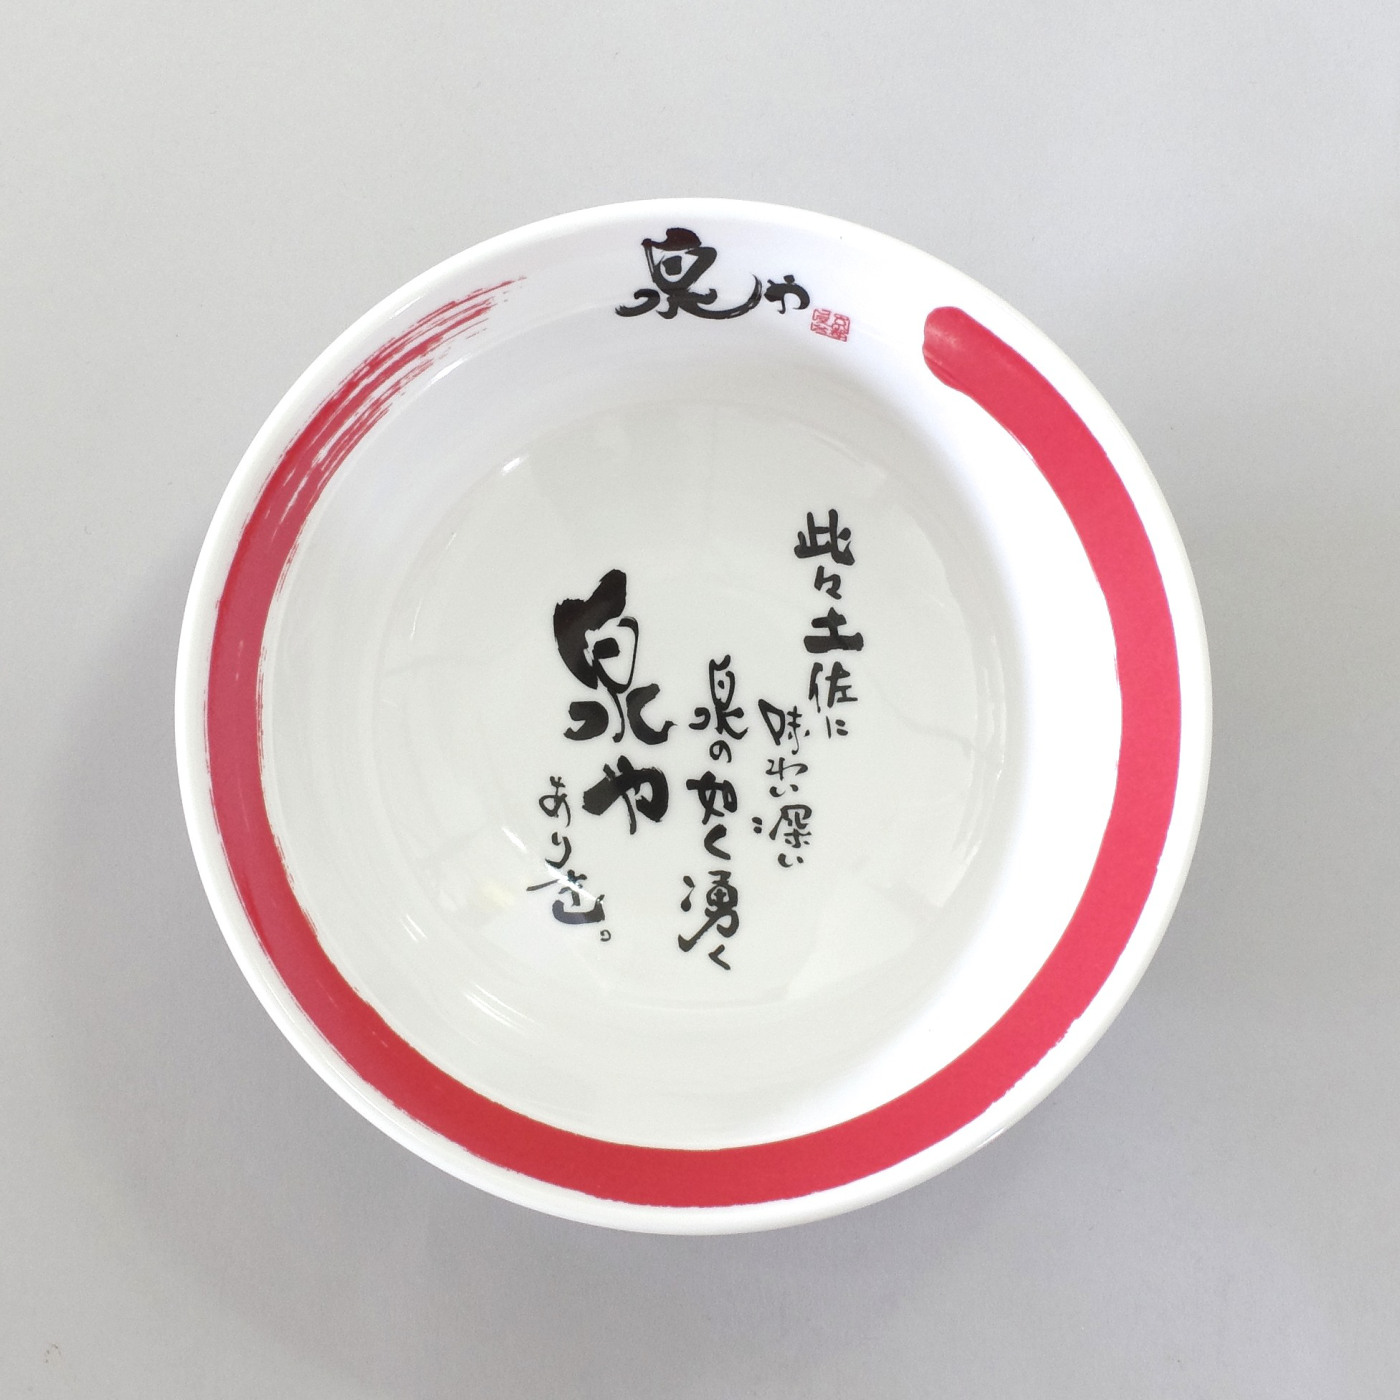 Customized Ramen Bowl (Logo and Message) by Miyake